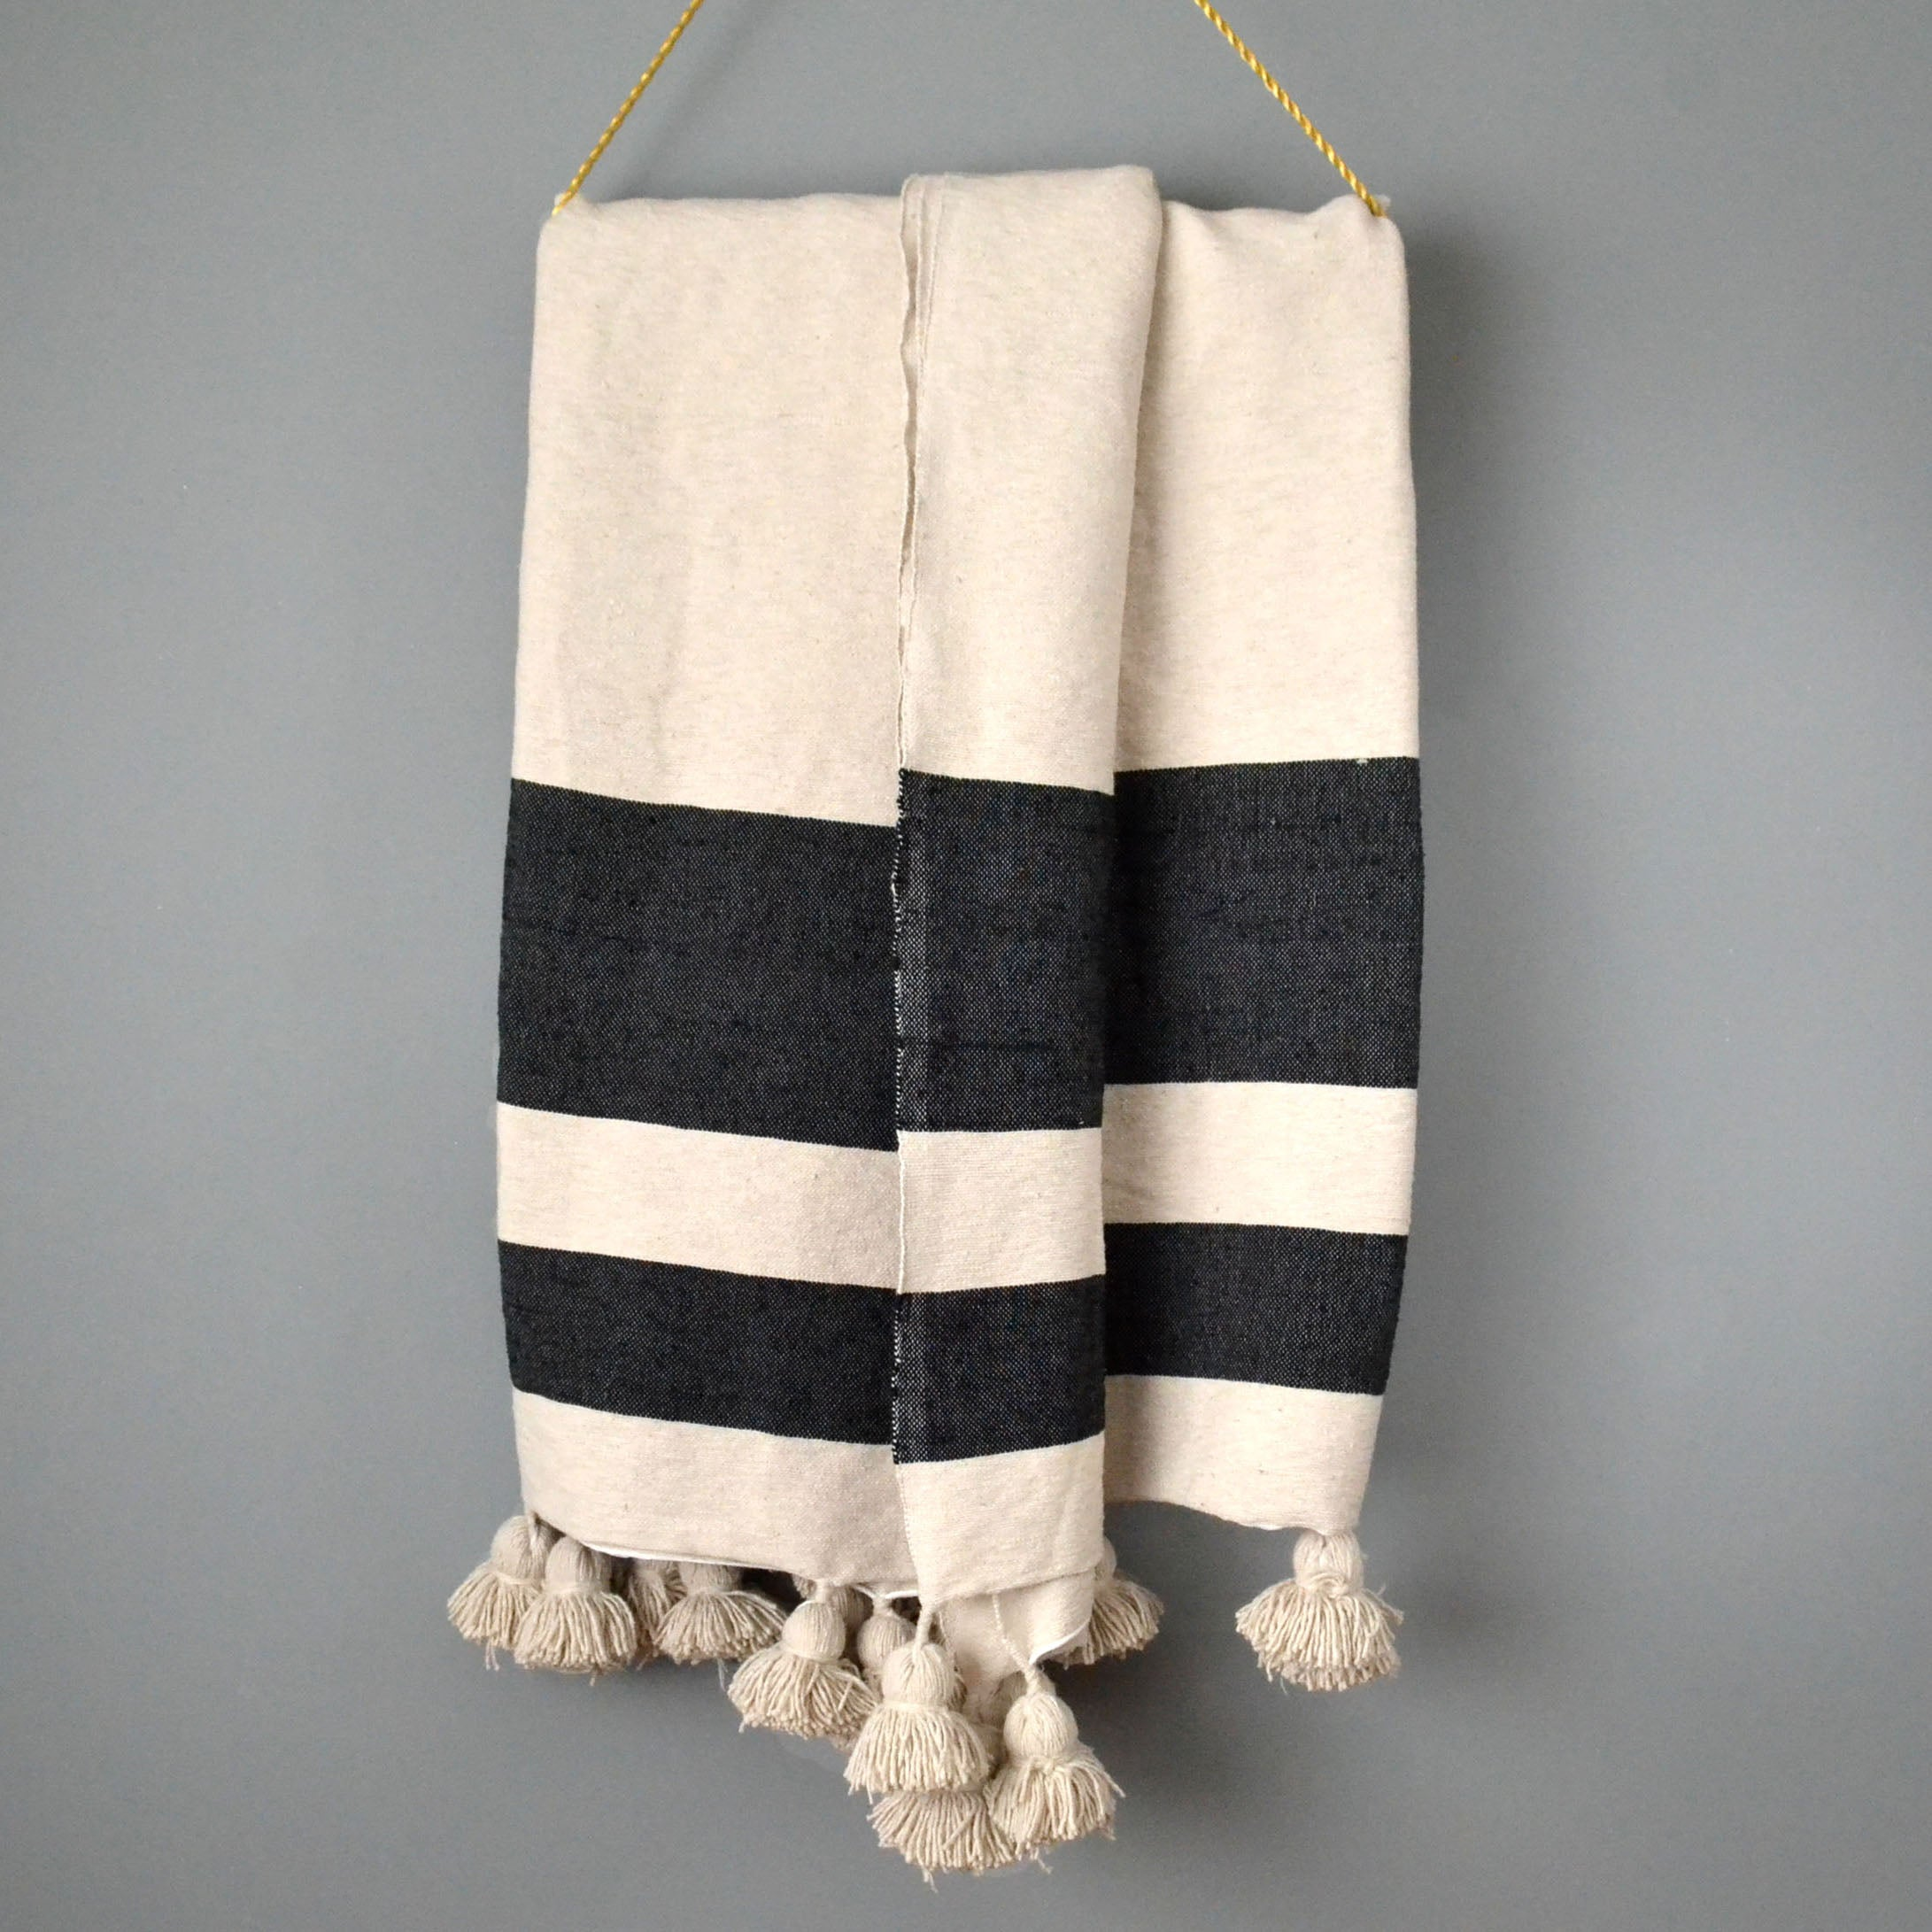 Striped Cotton Pom Pom Blanket by Yuba Mercantile